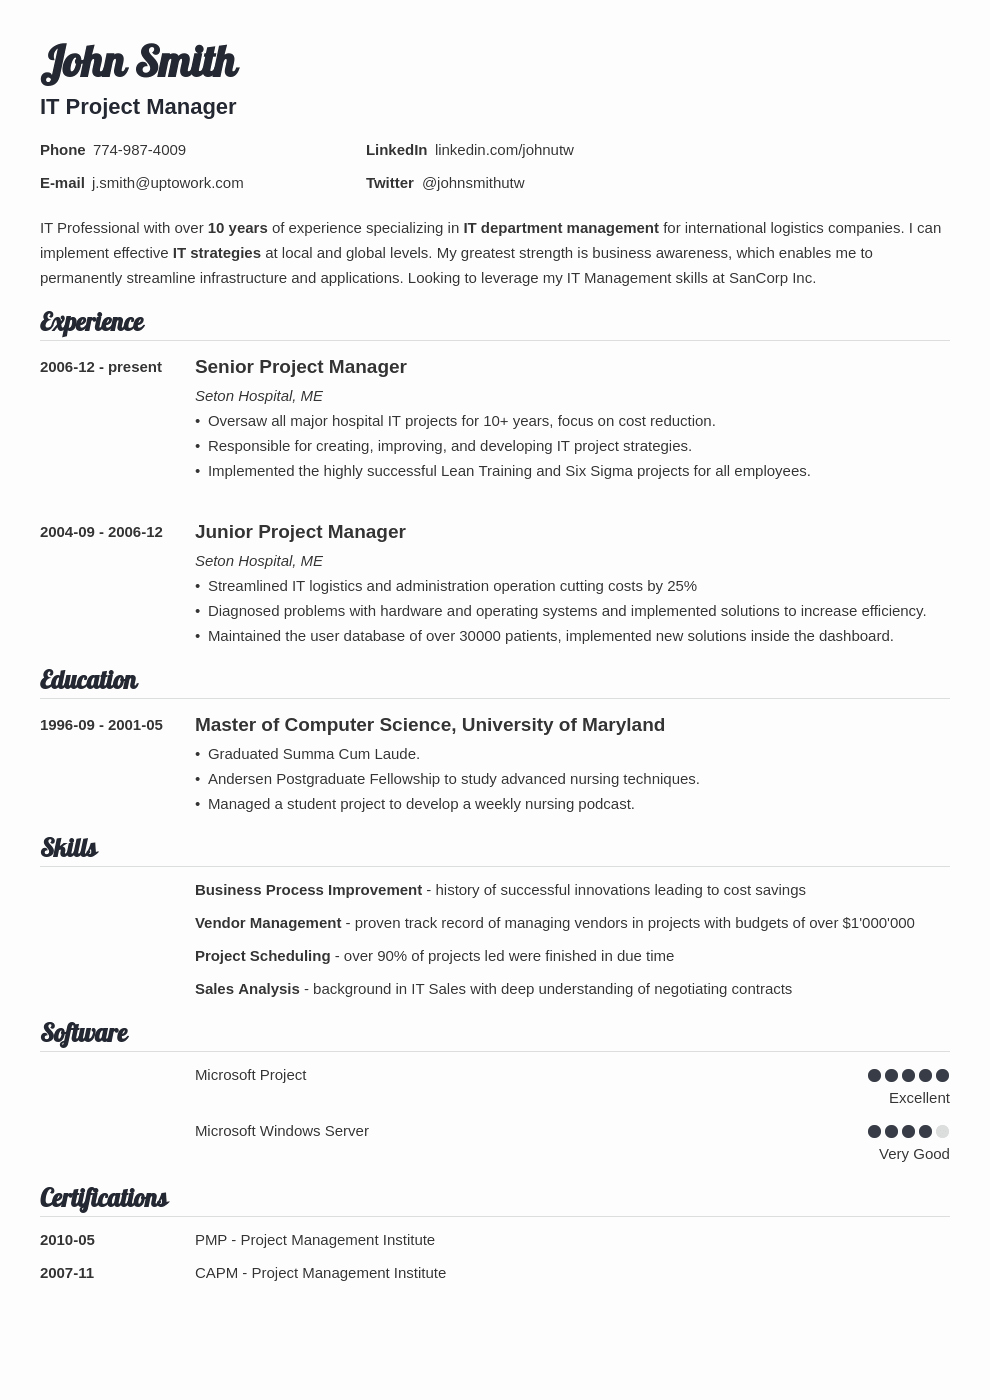 Professional Resume formats Free Download Inspirational 20 Resume Templates [download] Create Your Resume In 5